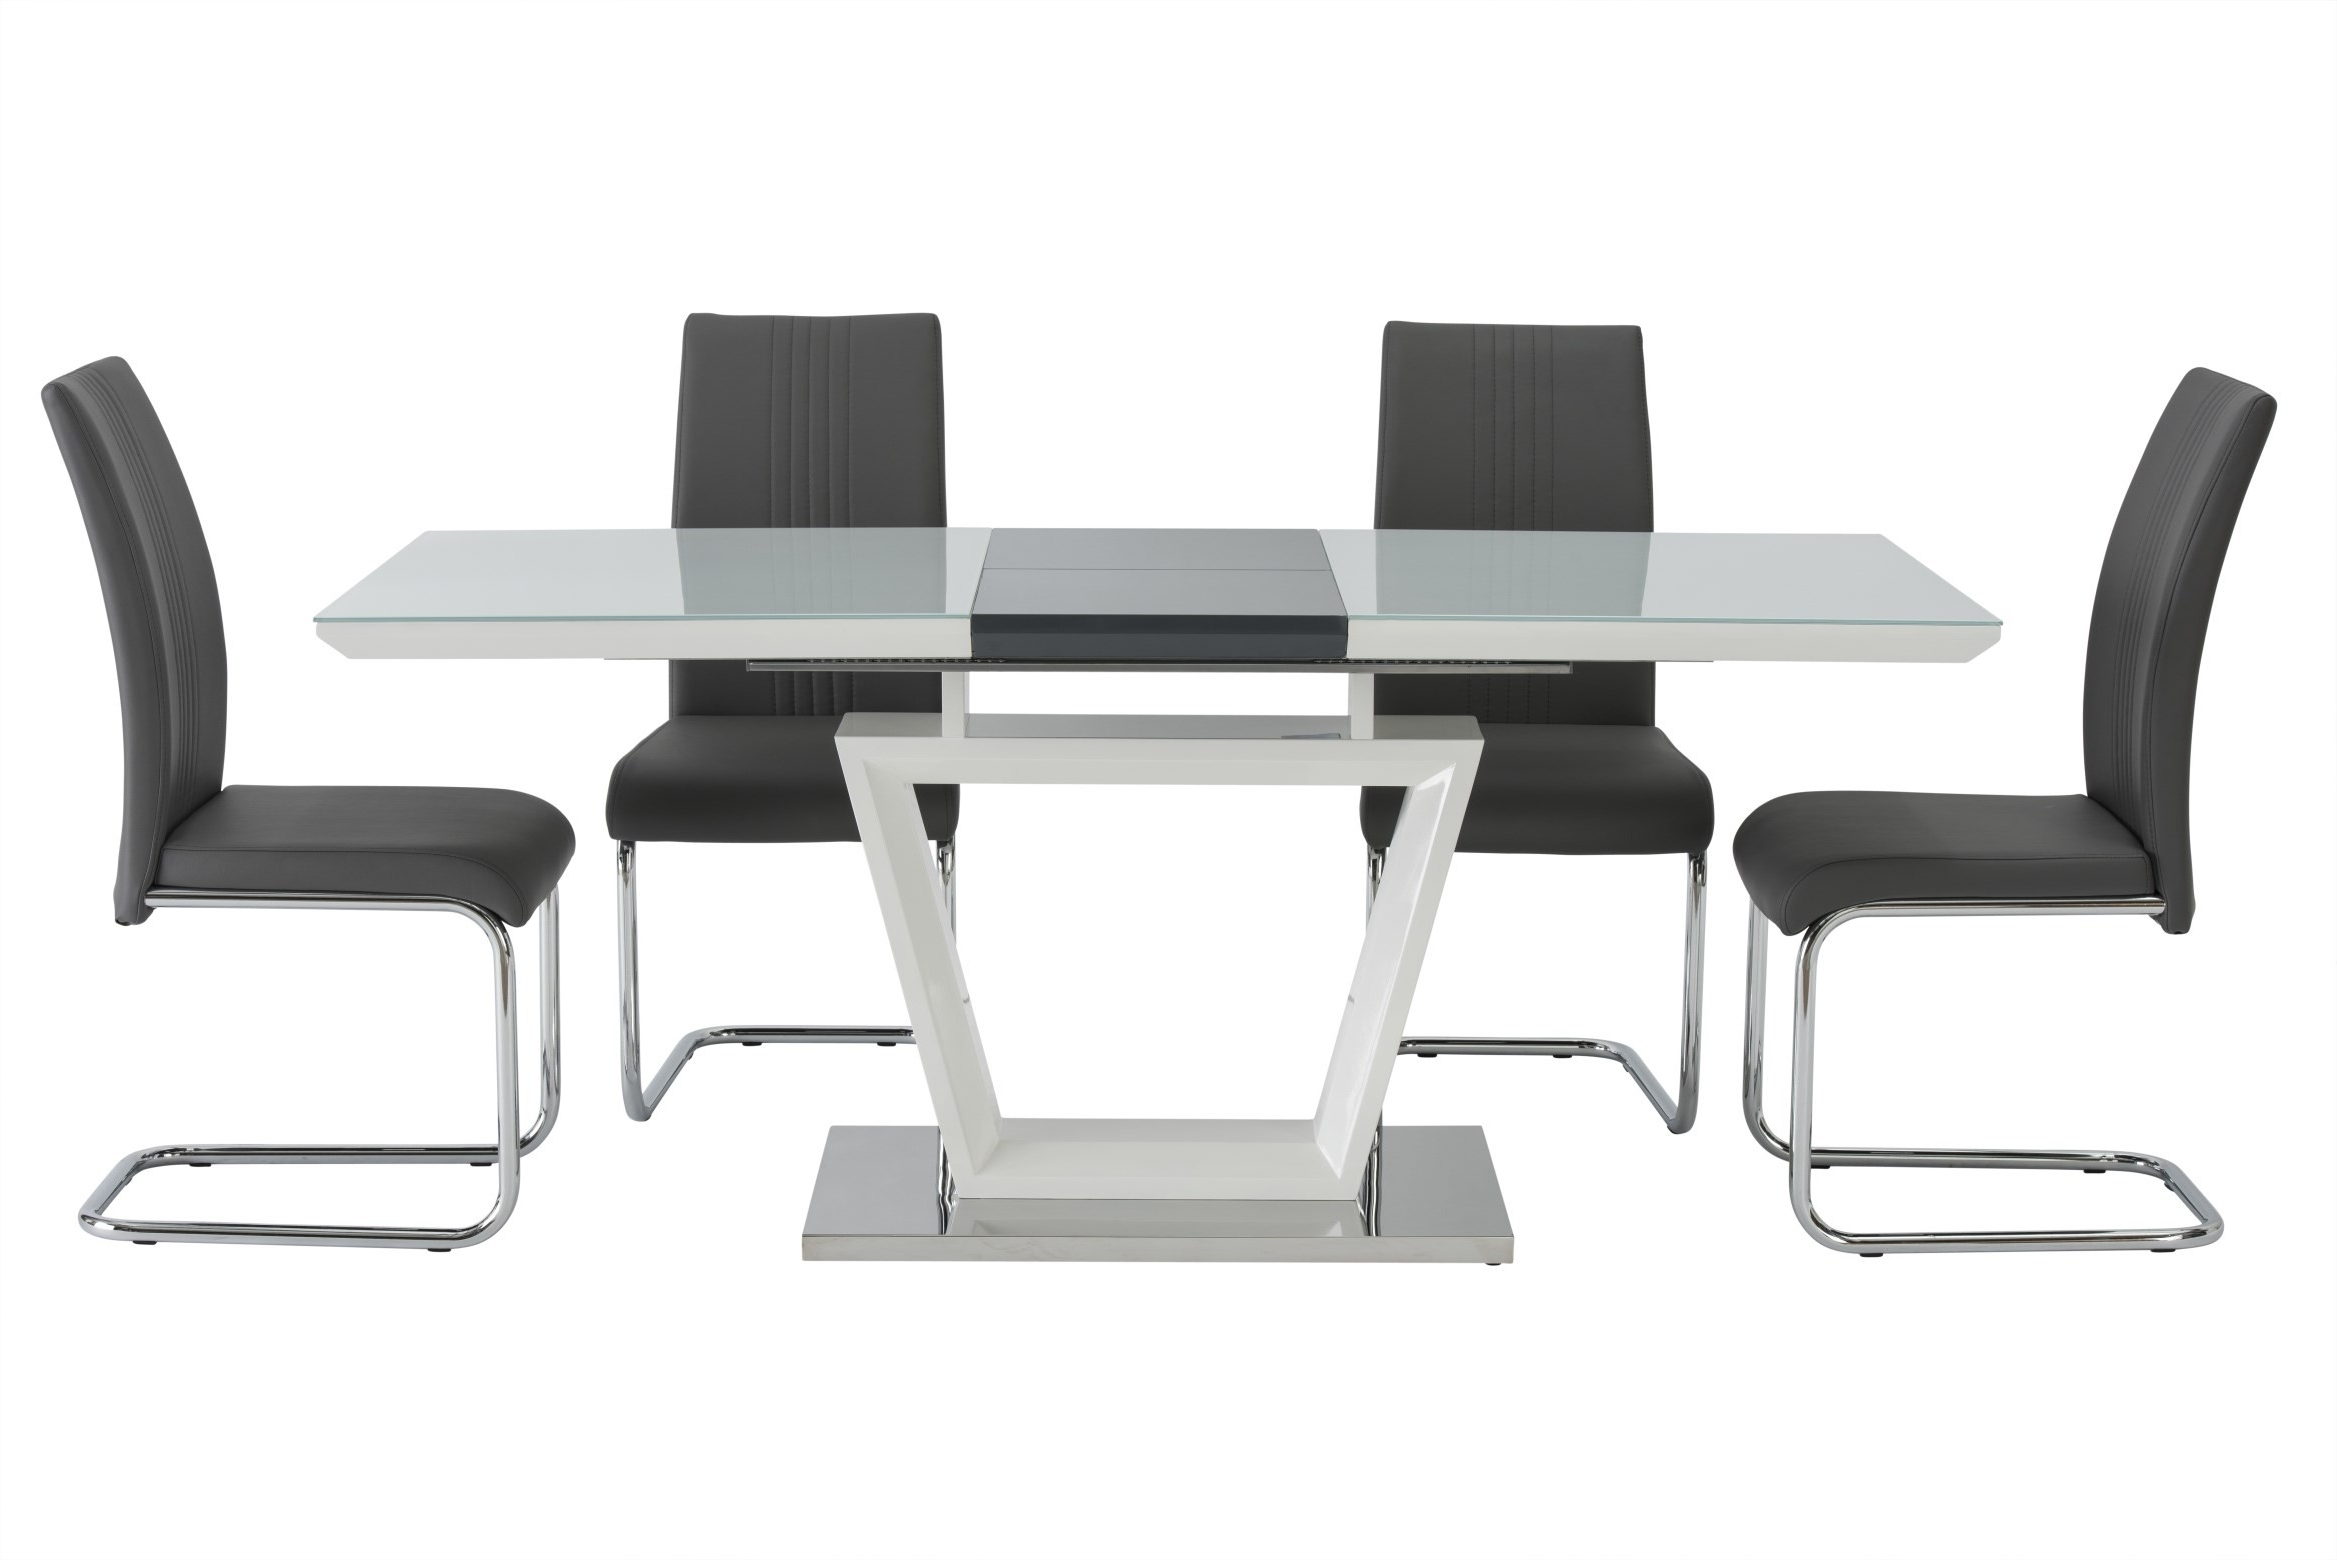 White Gloss Dining Tables 140Cm Regarding Preferred Arden High Gloss White With Grey Extendable Dining Table – With Or Without  Chairs (View 22 of 25)